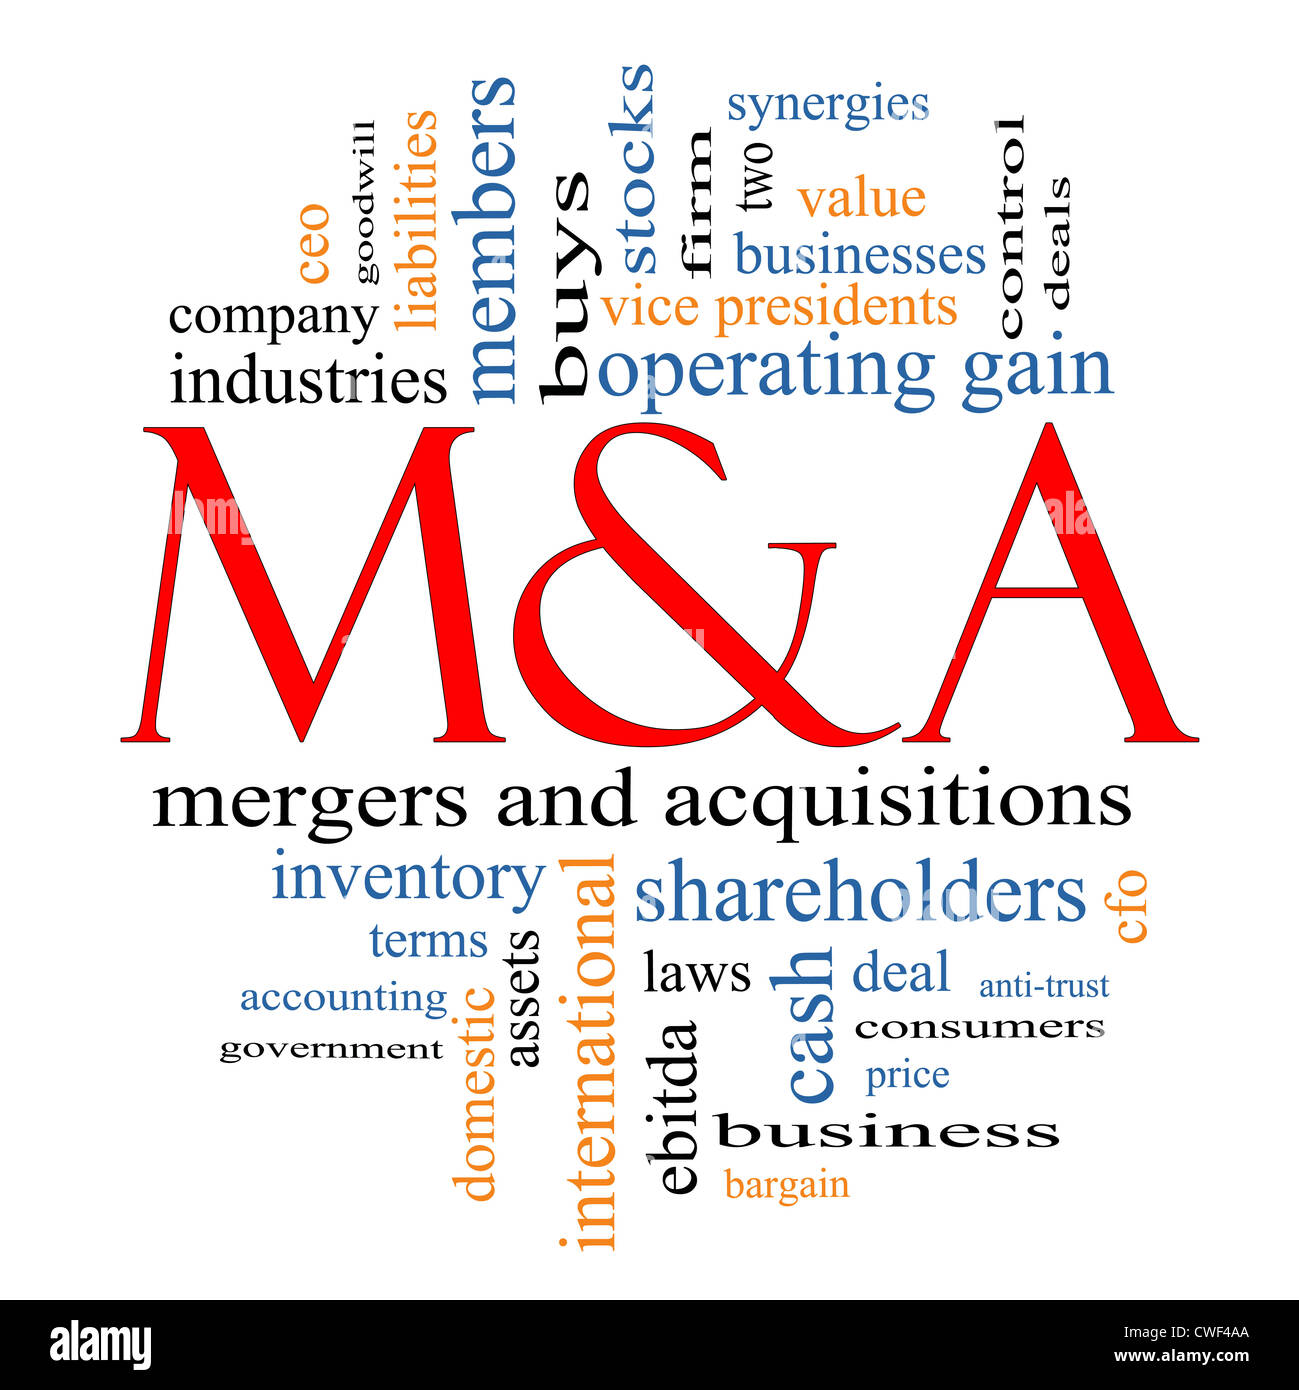 M & A (Mergers and Acquisitions) Word Cloud Concept with great terms such as deals, stocks, ebitda, ceo, shareholders - Stock Image